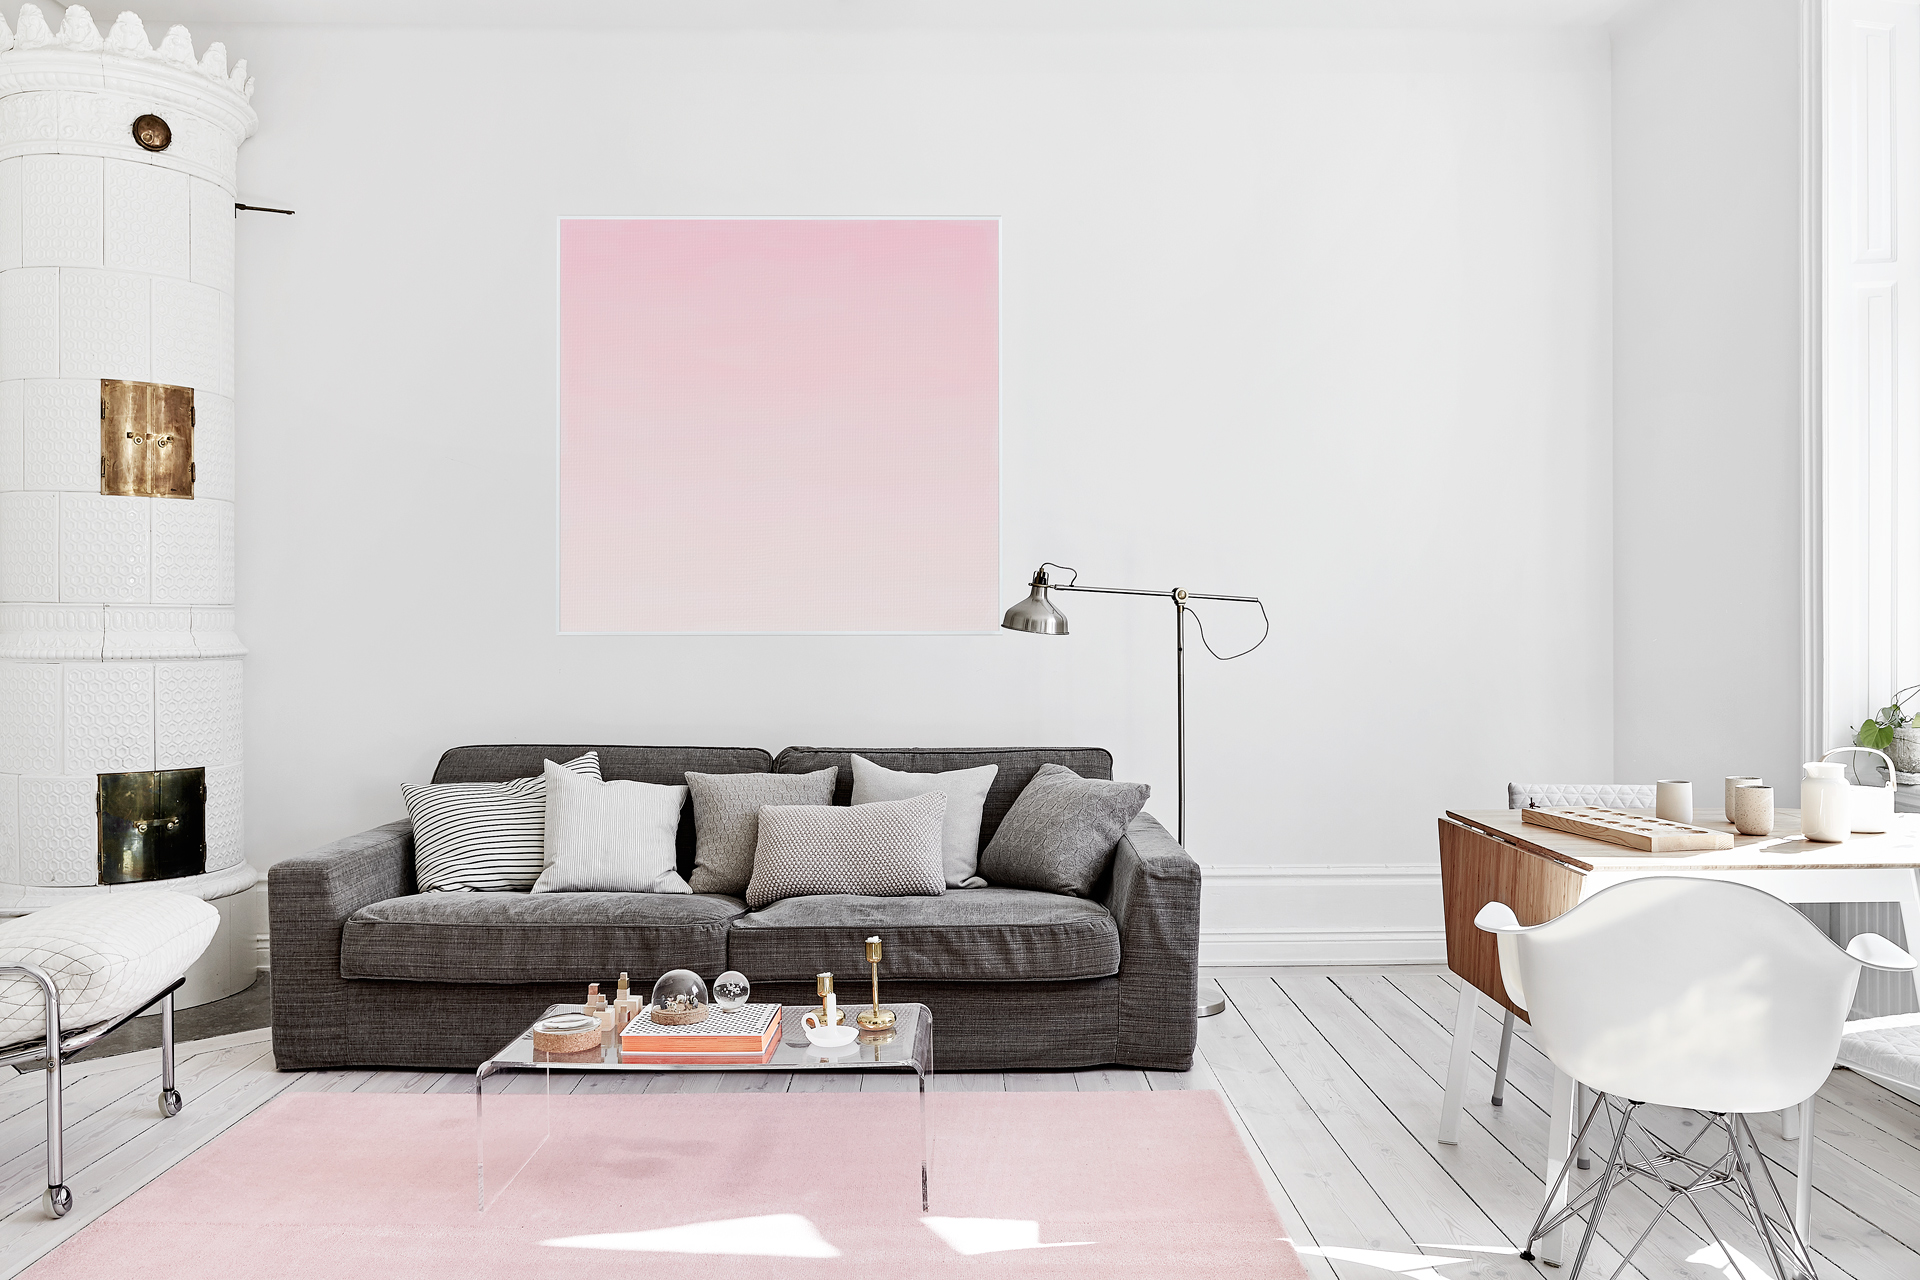 featured summer summer colors Summer Colors to Use in Your Home Design Ideas summer blush ombre pink scandinavian interior living room